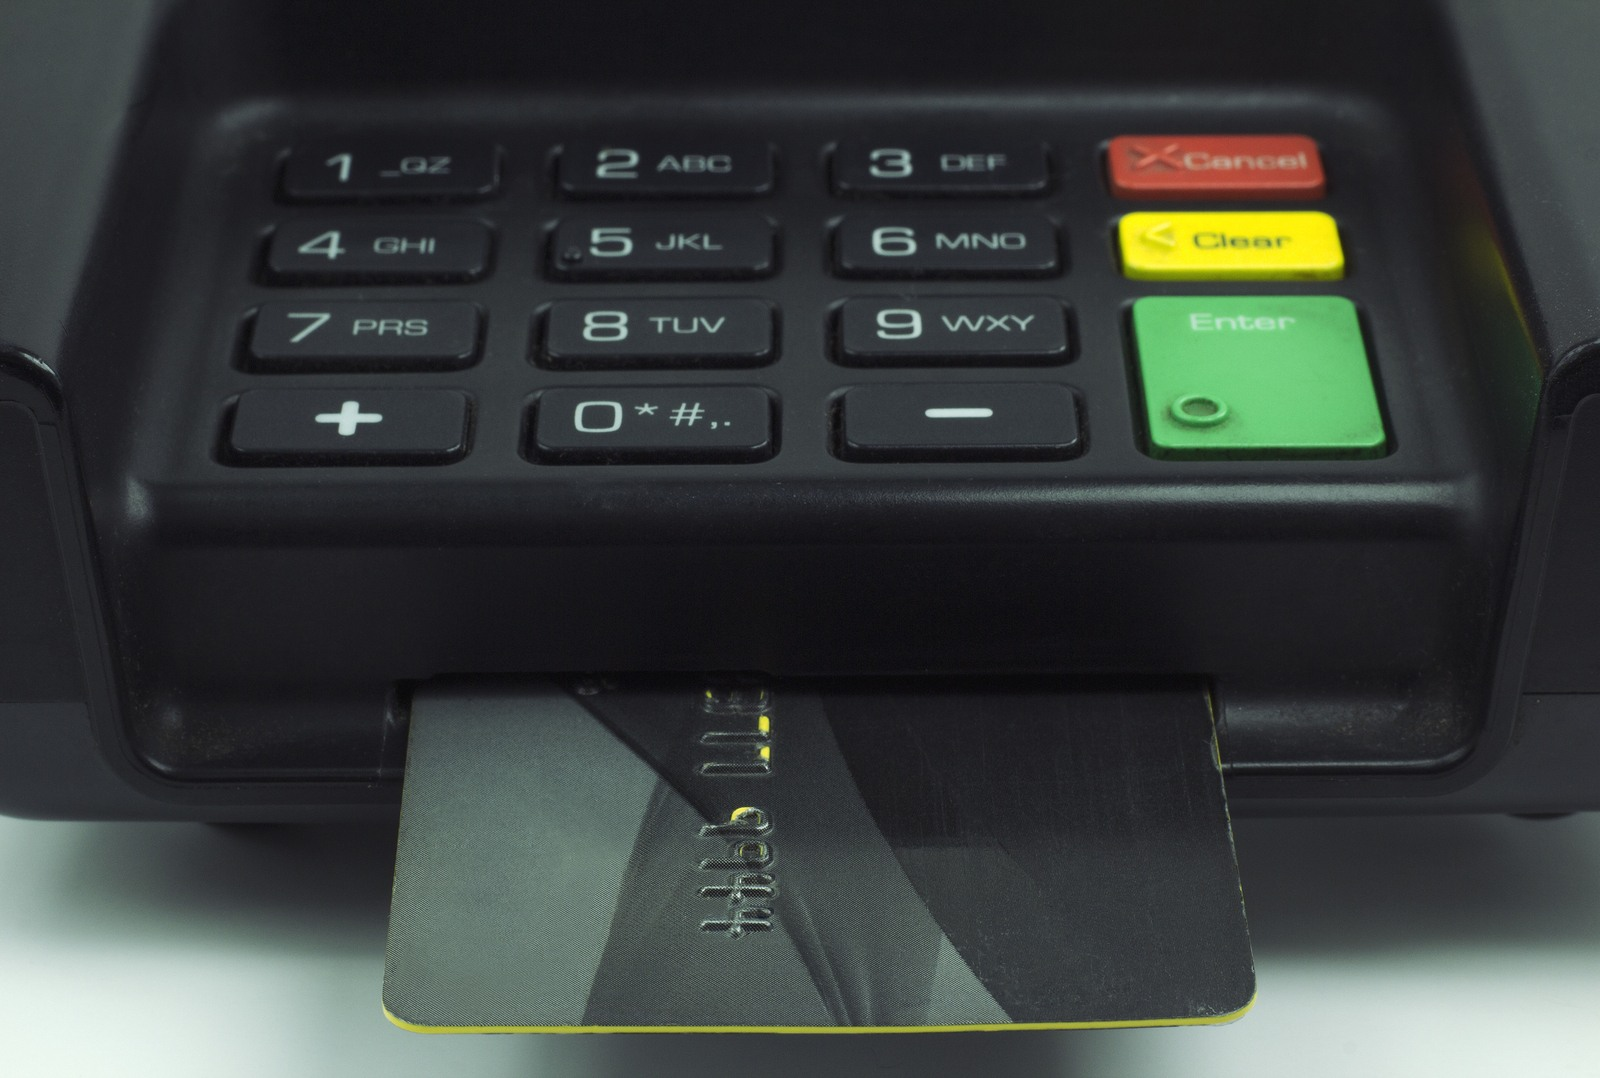 EMV card in reader